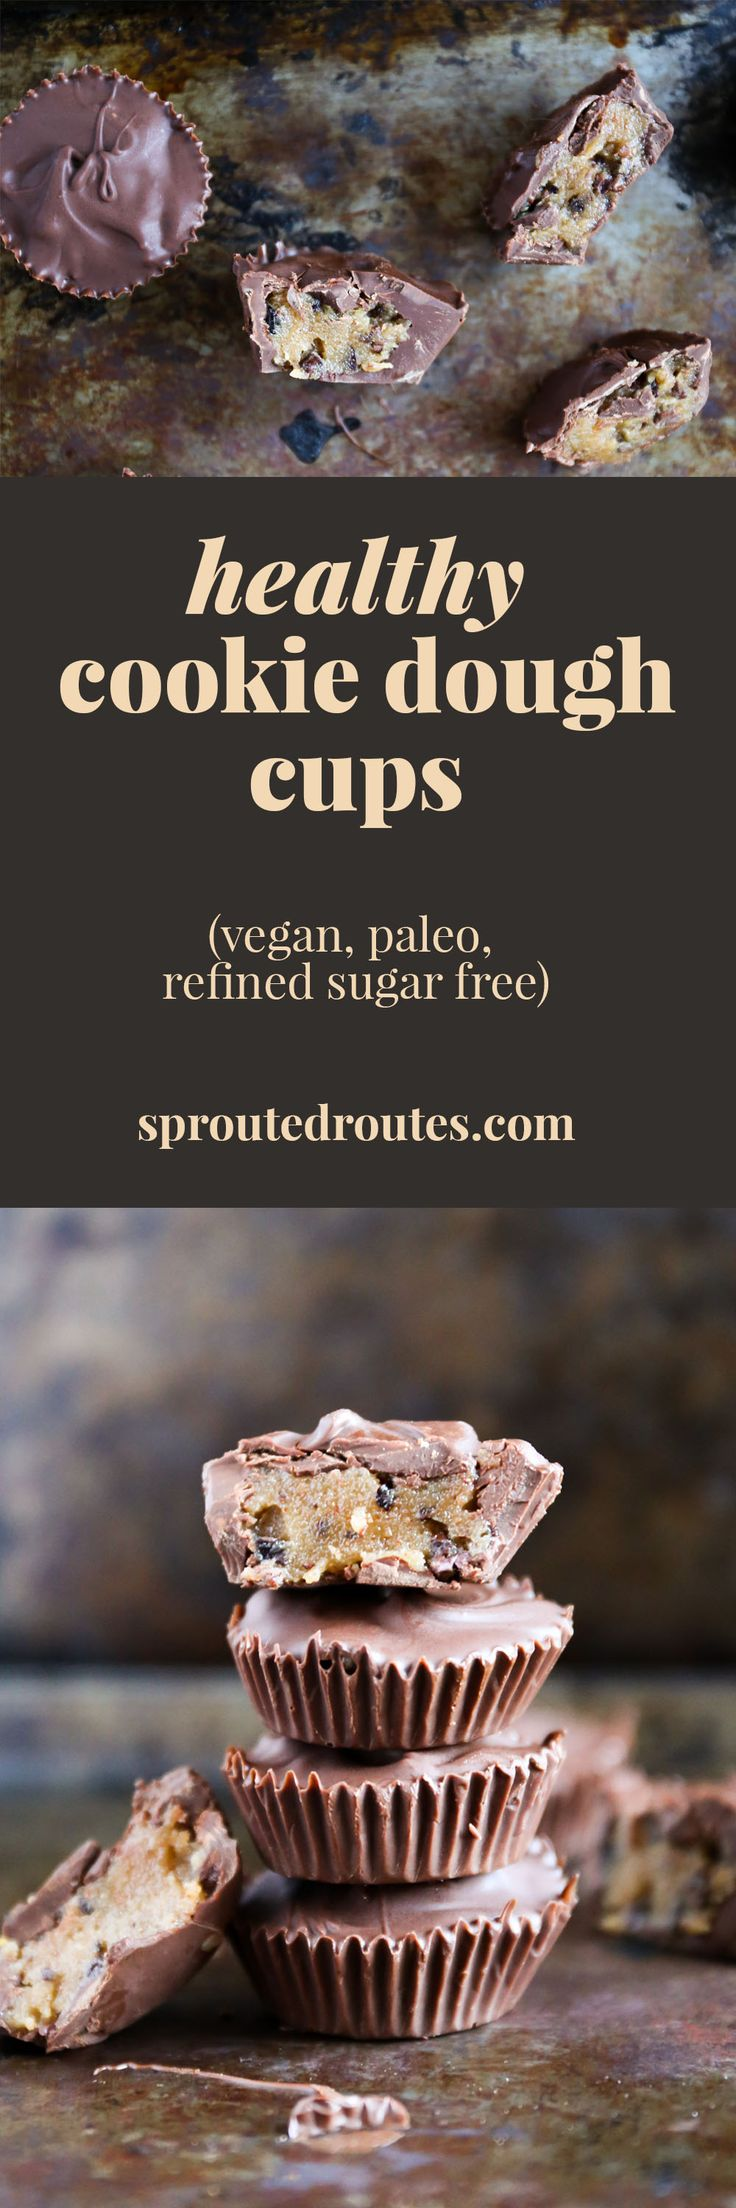 Healthy, vegan cookie dough cups made easy in the Vitamix!